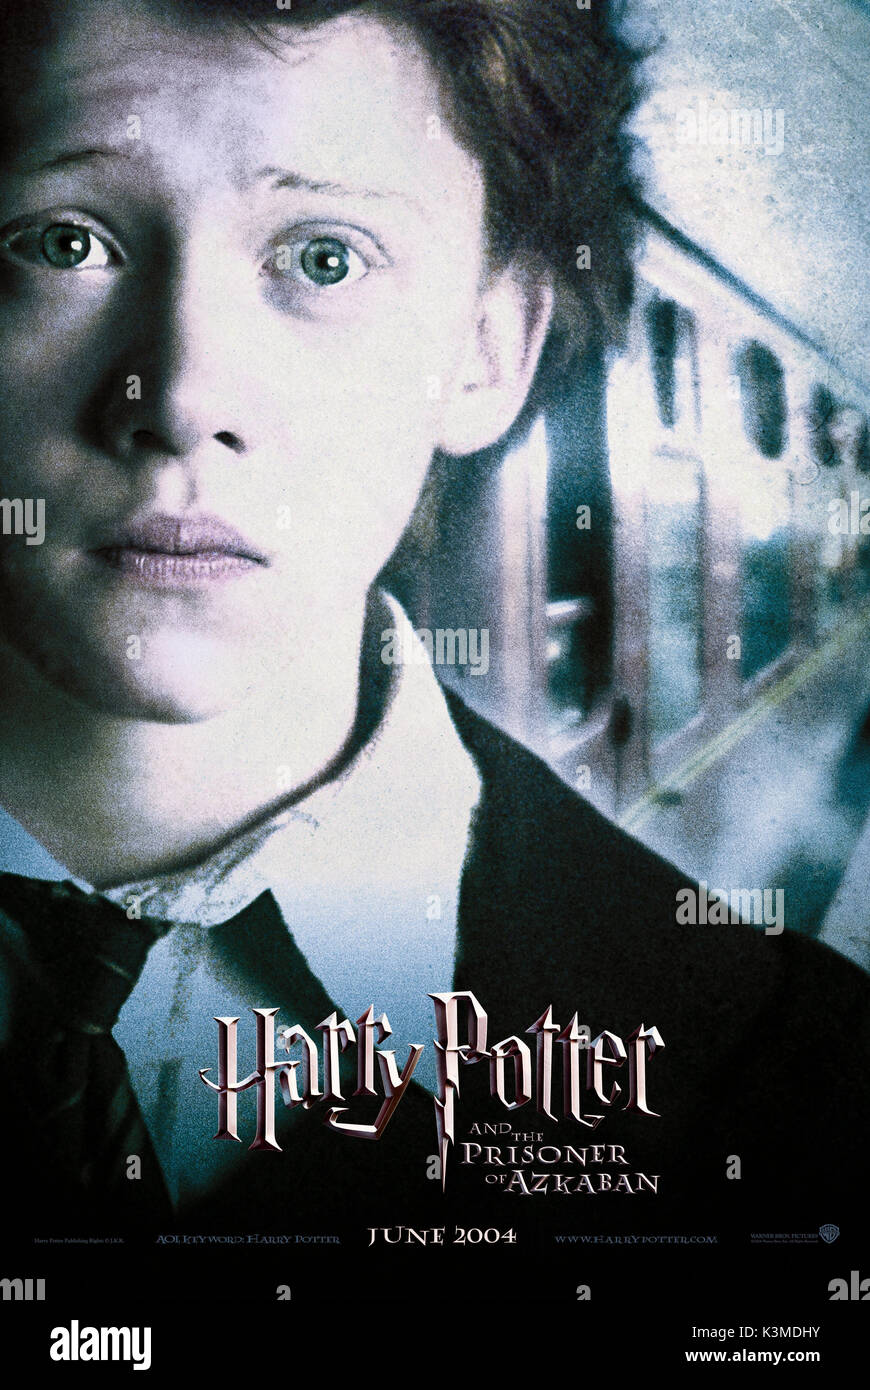 HARRY POTTER AND THE PRISONER OF AZKABAN [US 2004] RUPERT GRINT as Ron Weasley     Date: 2004 - Stock Image